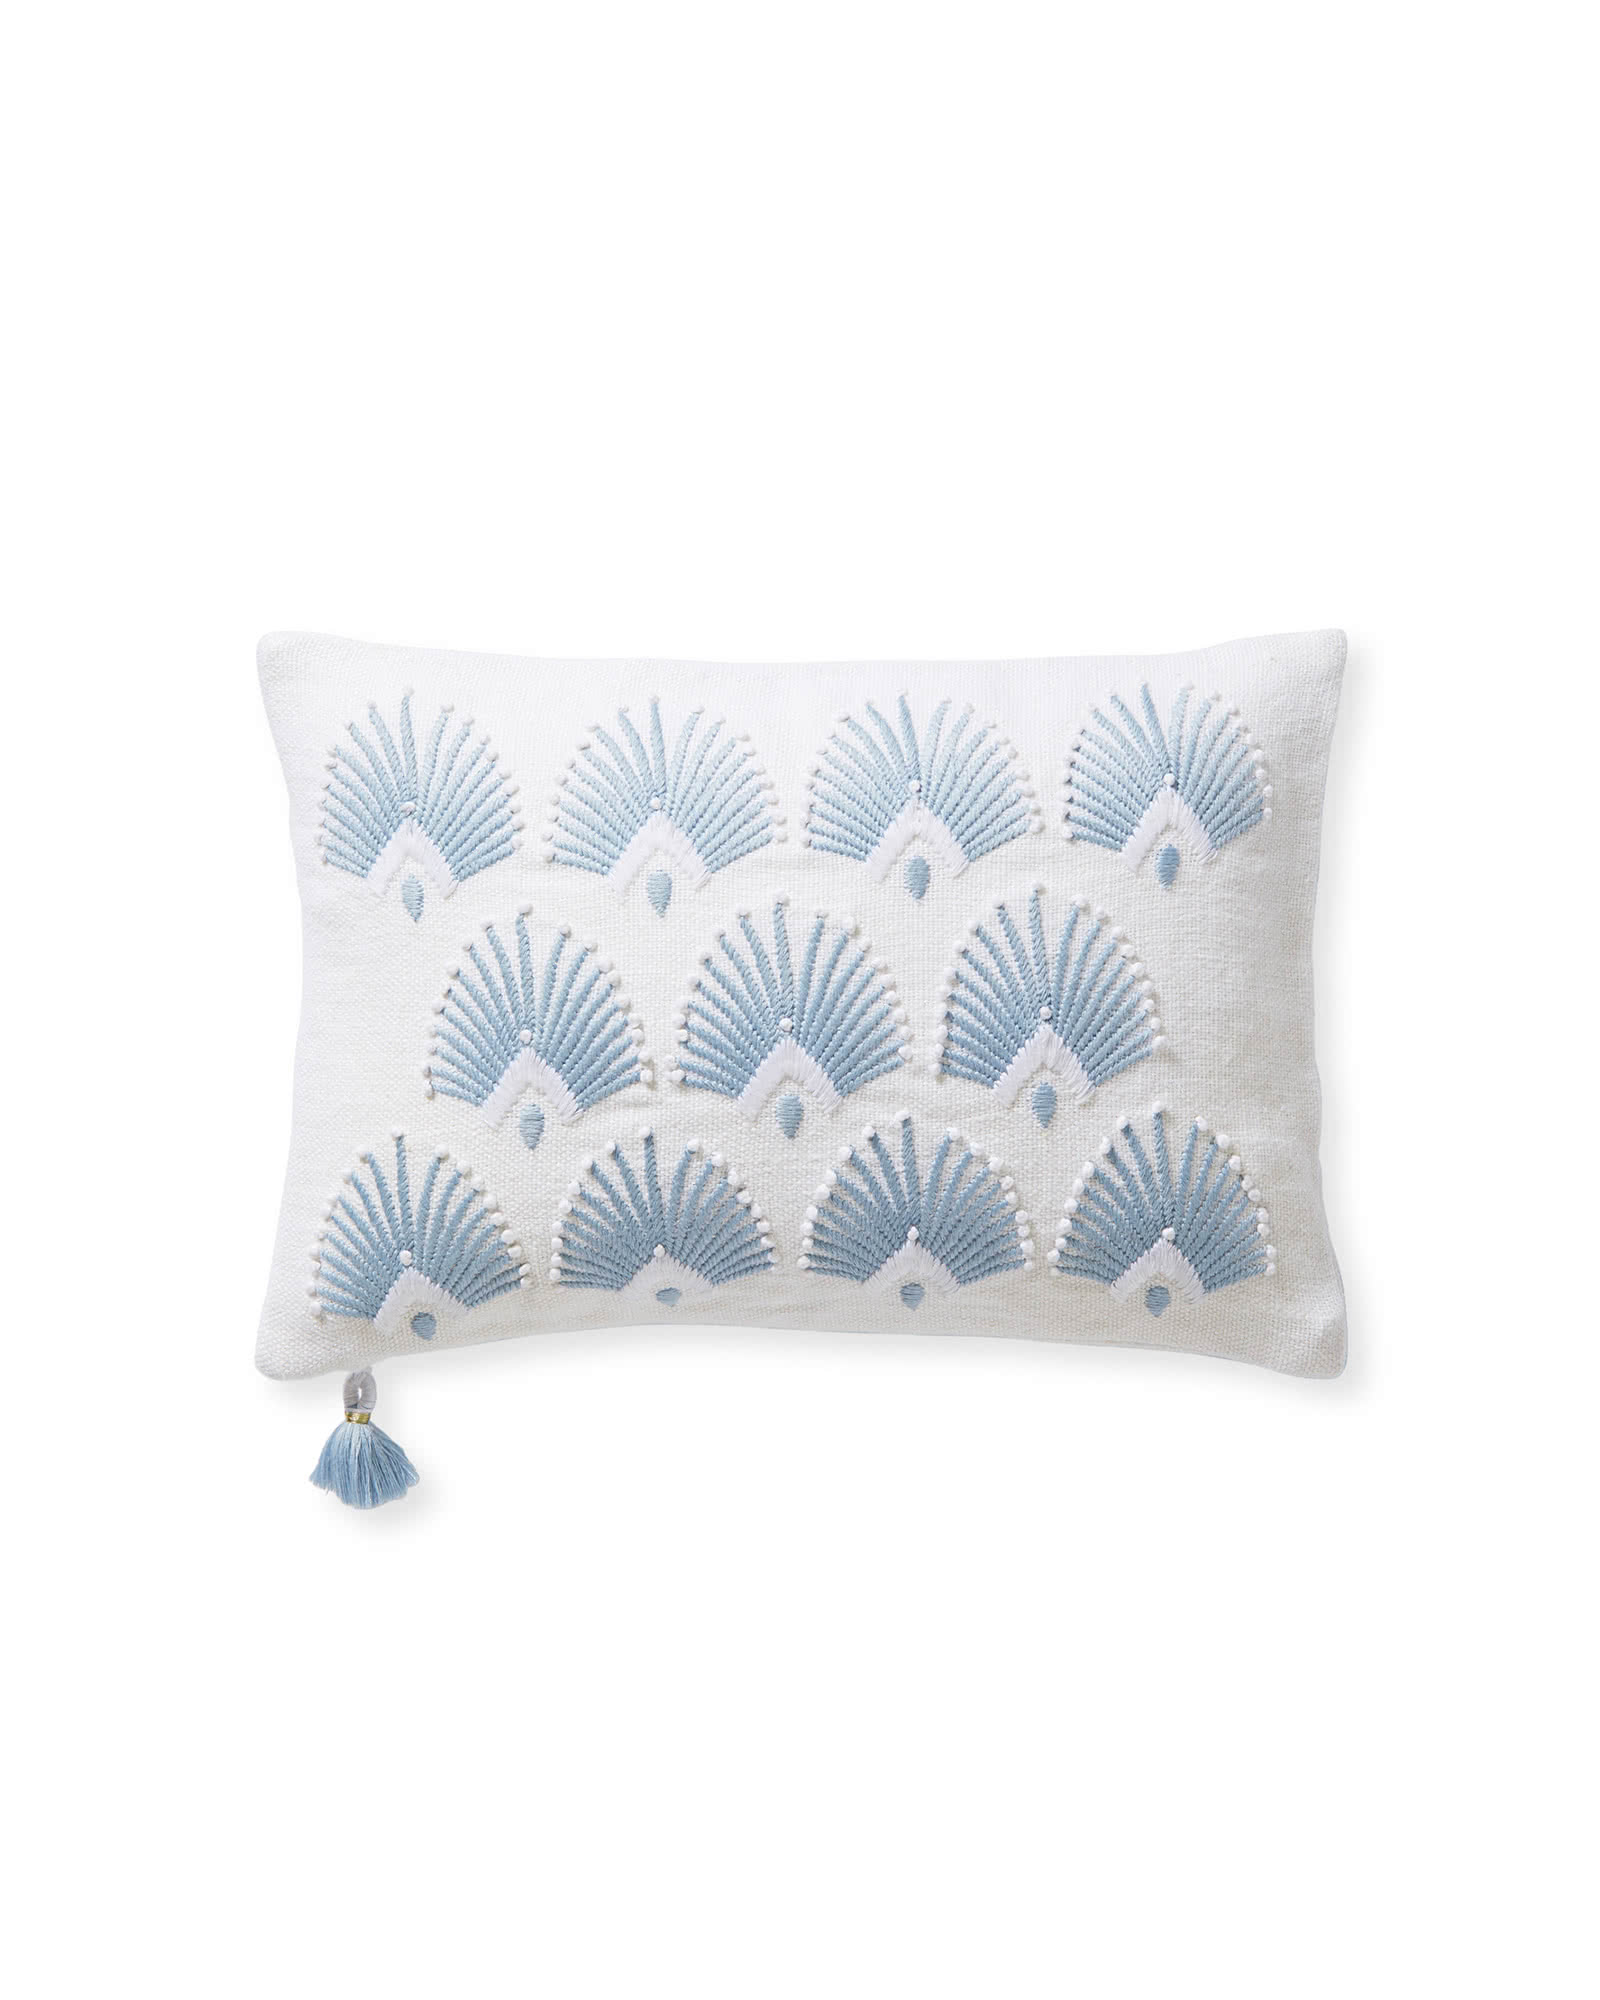 Monarch Pillow Cover, Coastal Blue